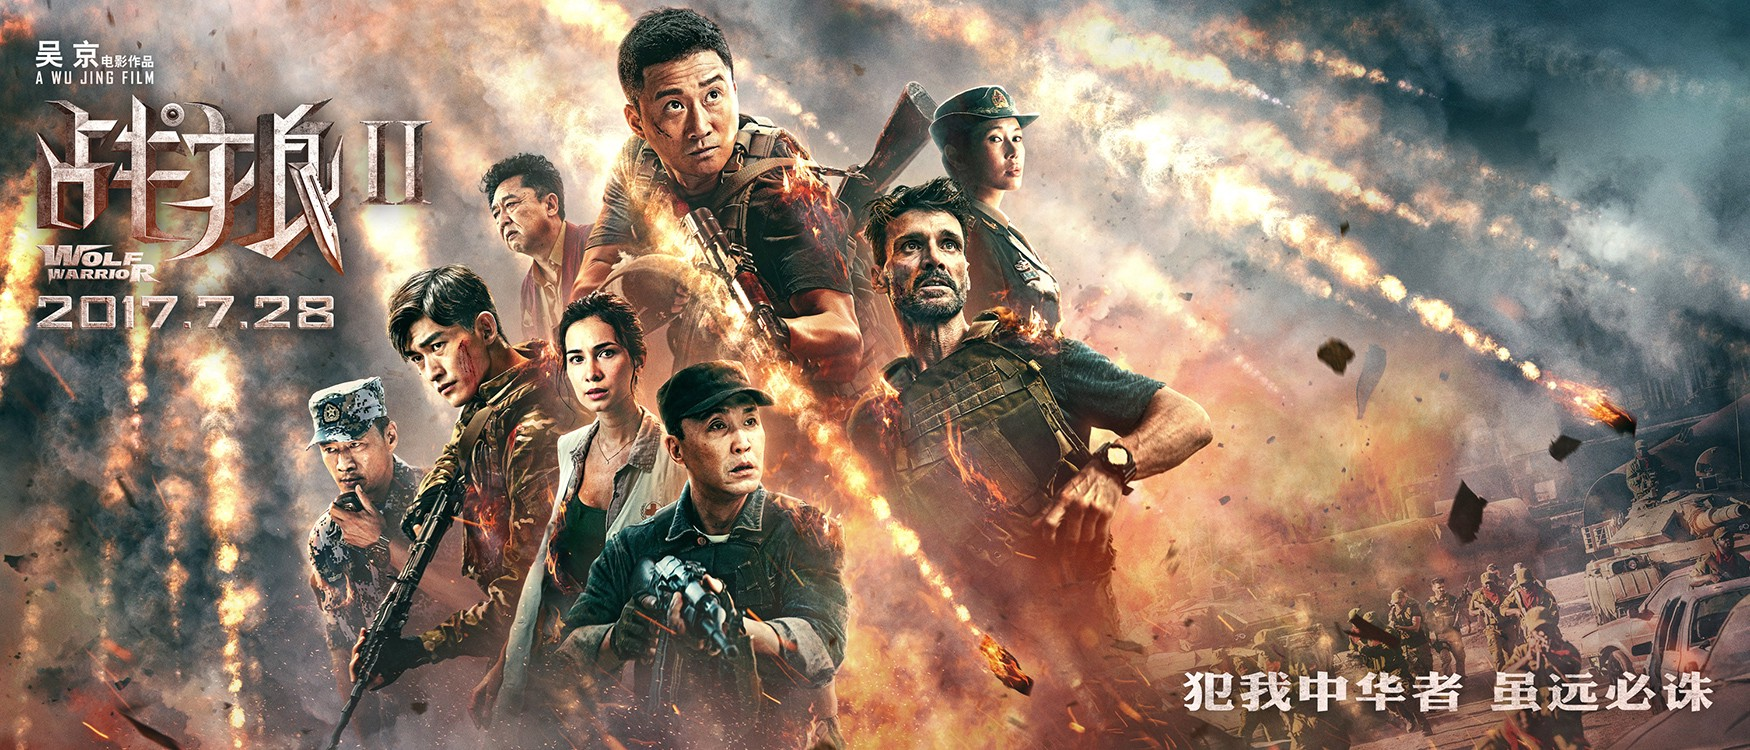 Wolf Warrior 2 Wu Jing S Mixed Bag Of A Box Office Sensation By Ed Travis Cinapse